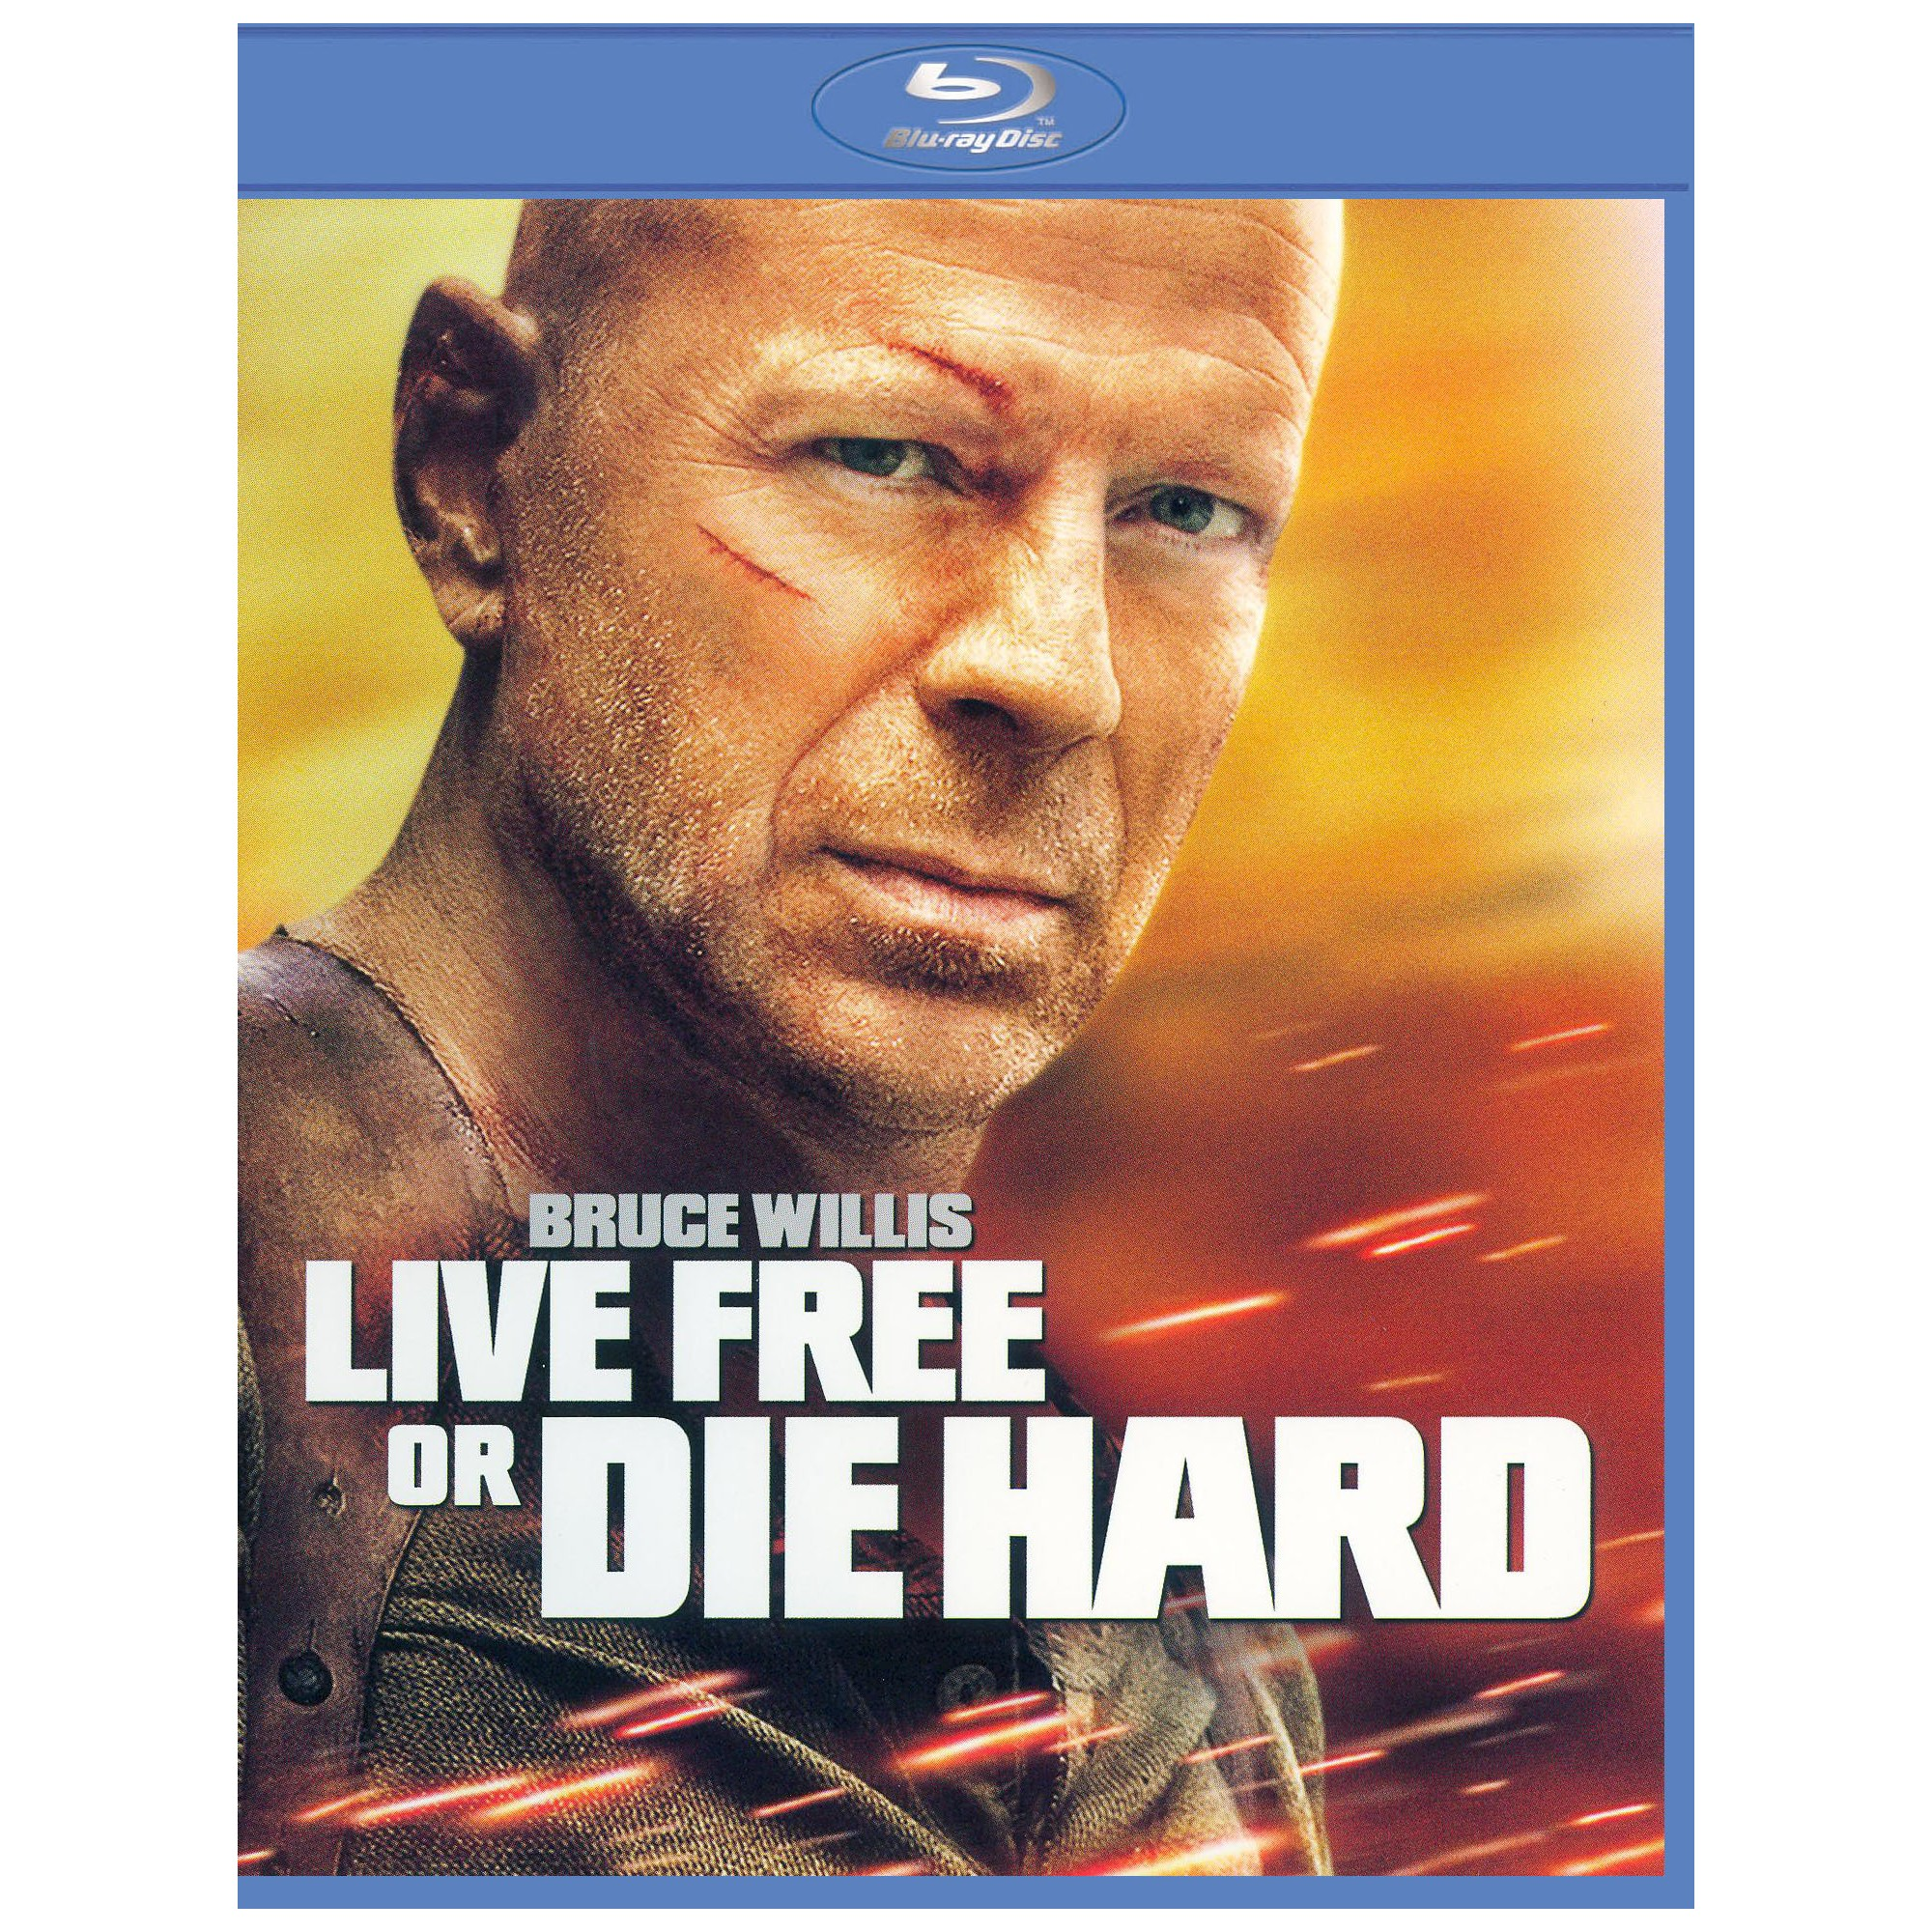 Live Free or Die Hard (Blu-ray) : DVD Talk Review of the ...